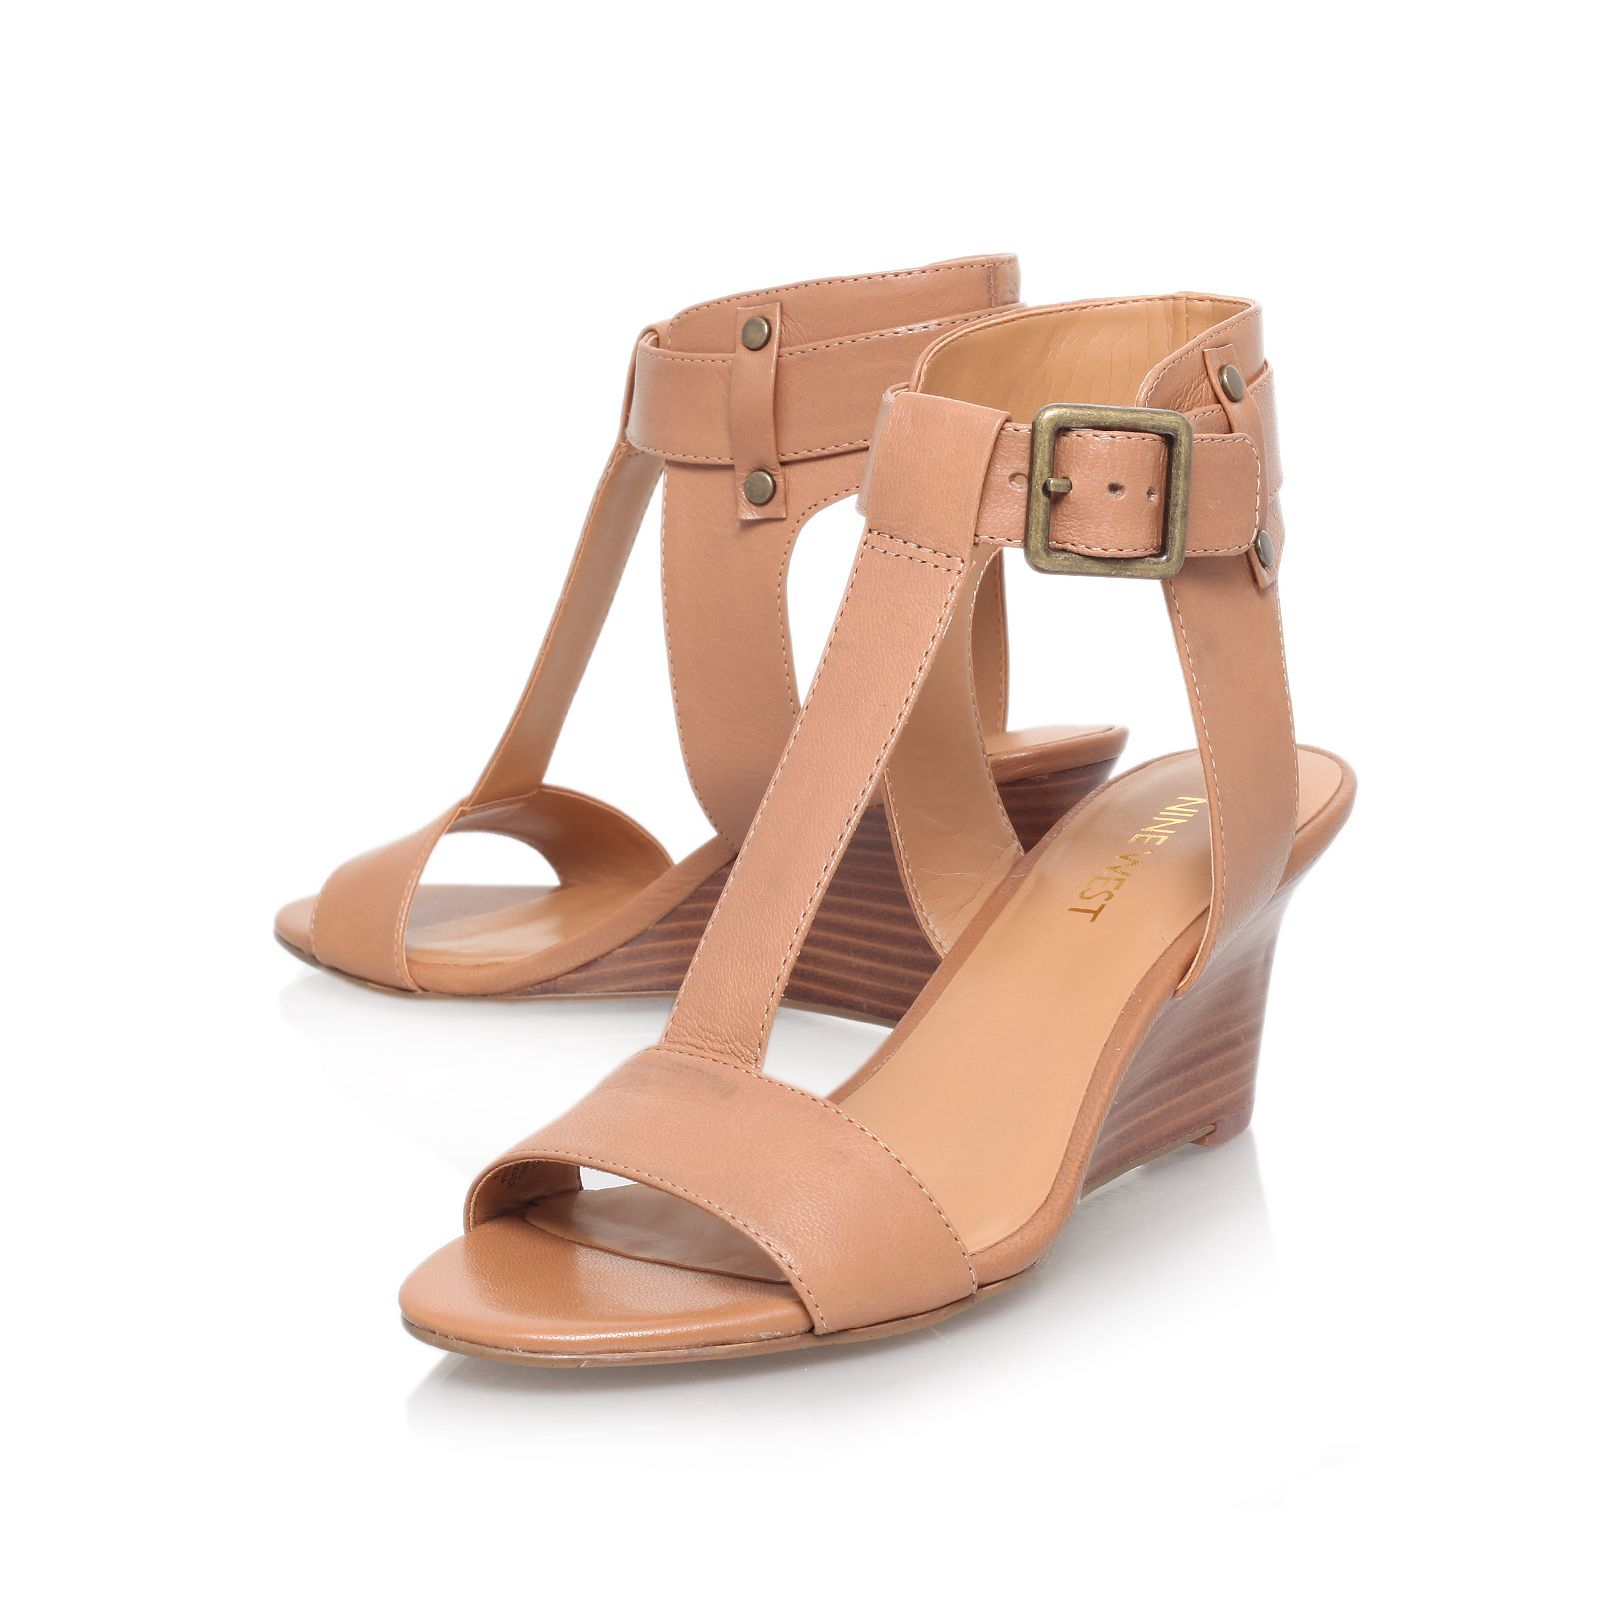 Shopbop has the fashions you crave. Shop our collection of charming nude wedges shoes and upgrade your look. Work one of these nude wedges shoes into your wardrobe to .